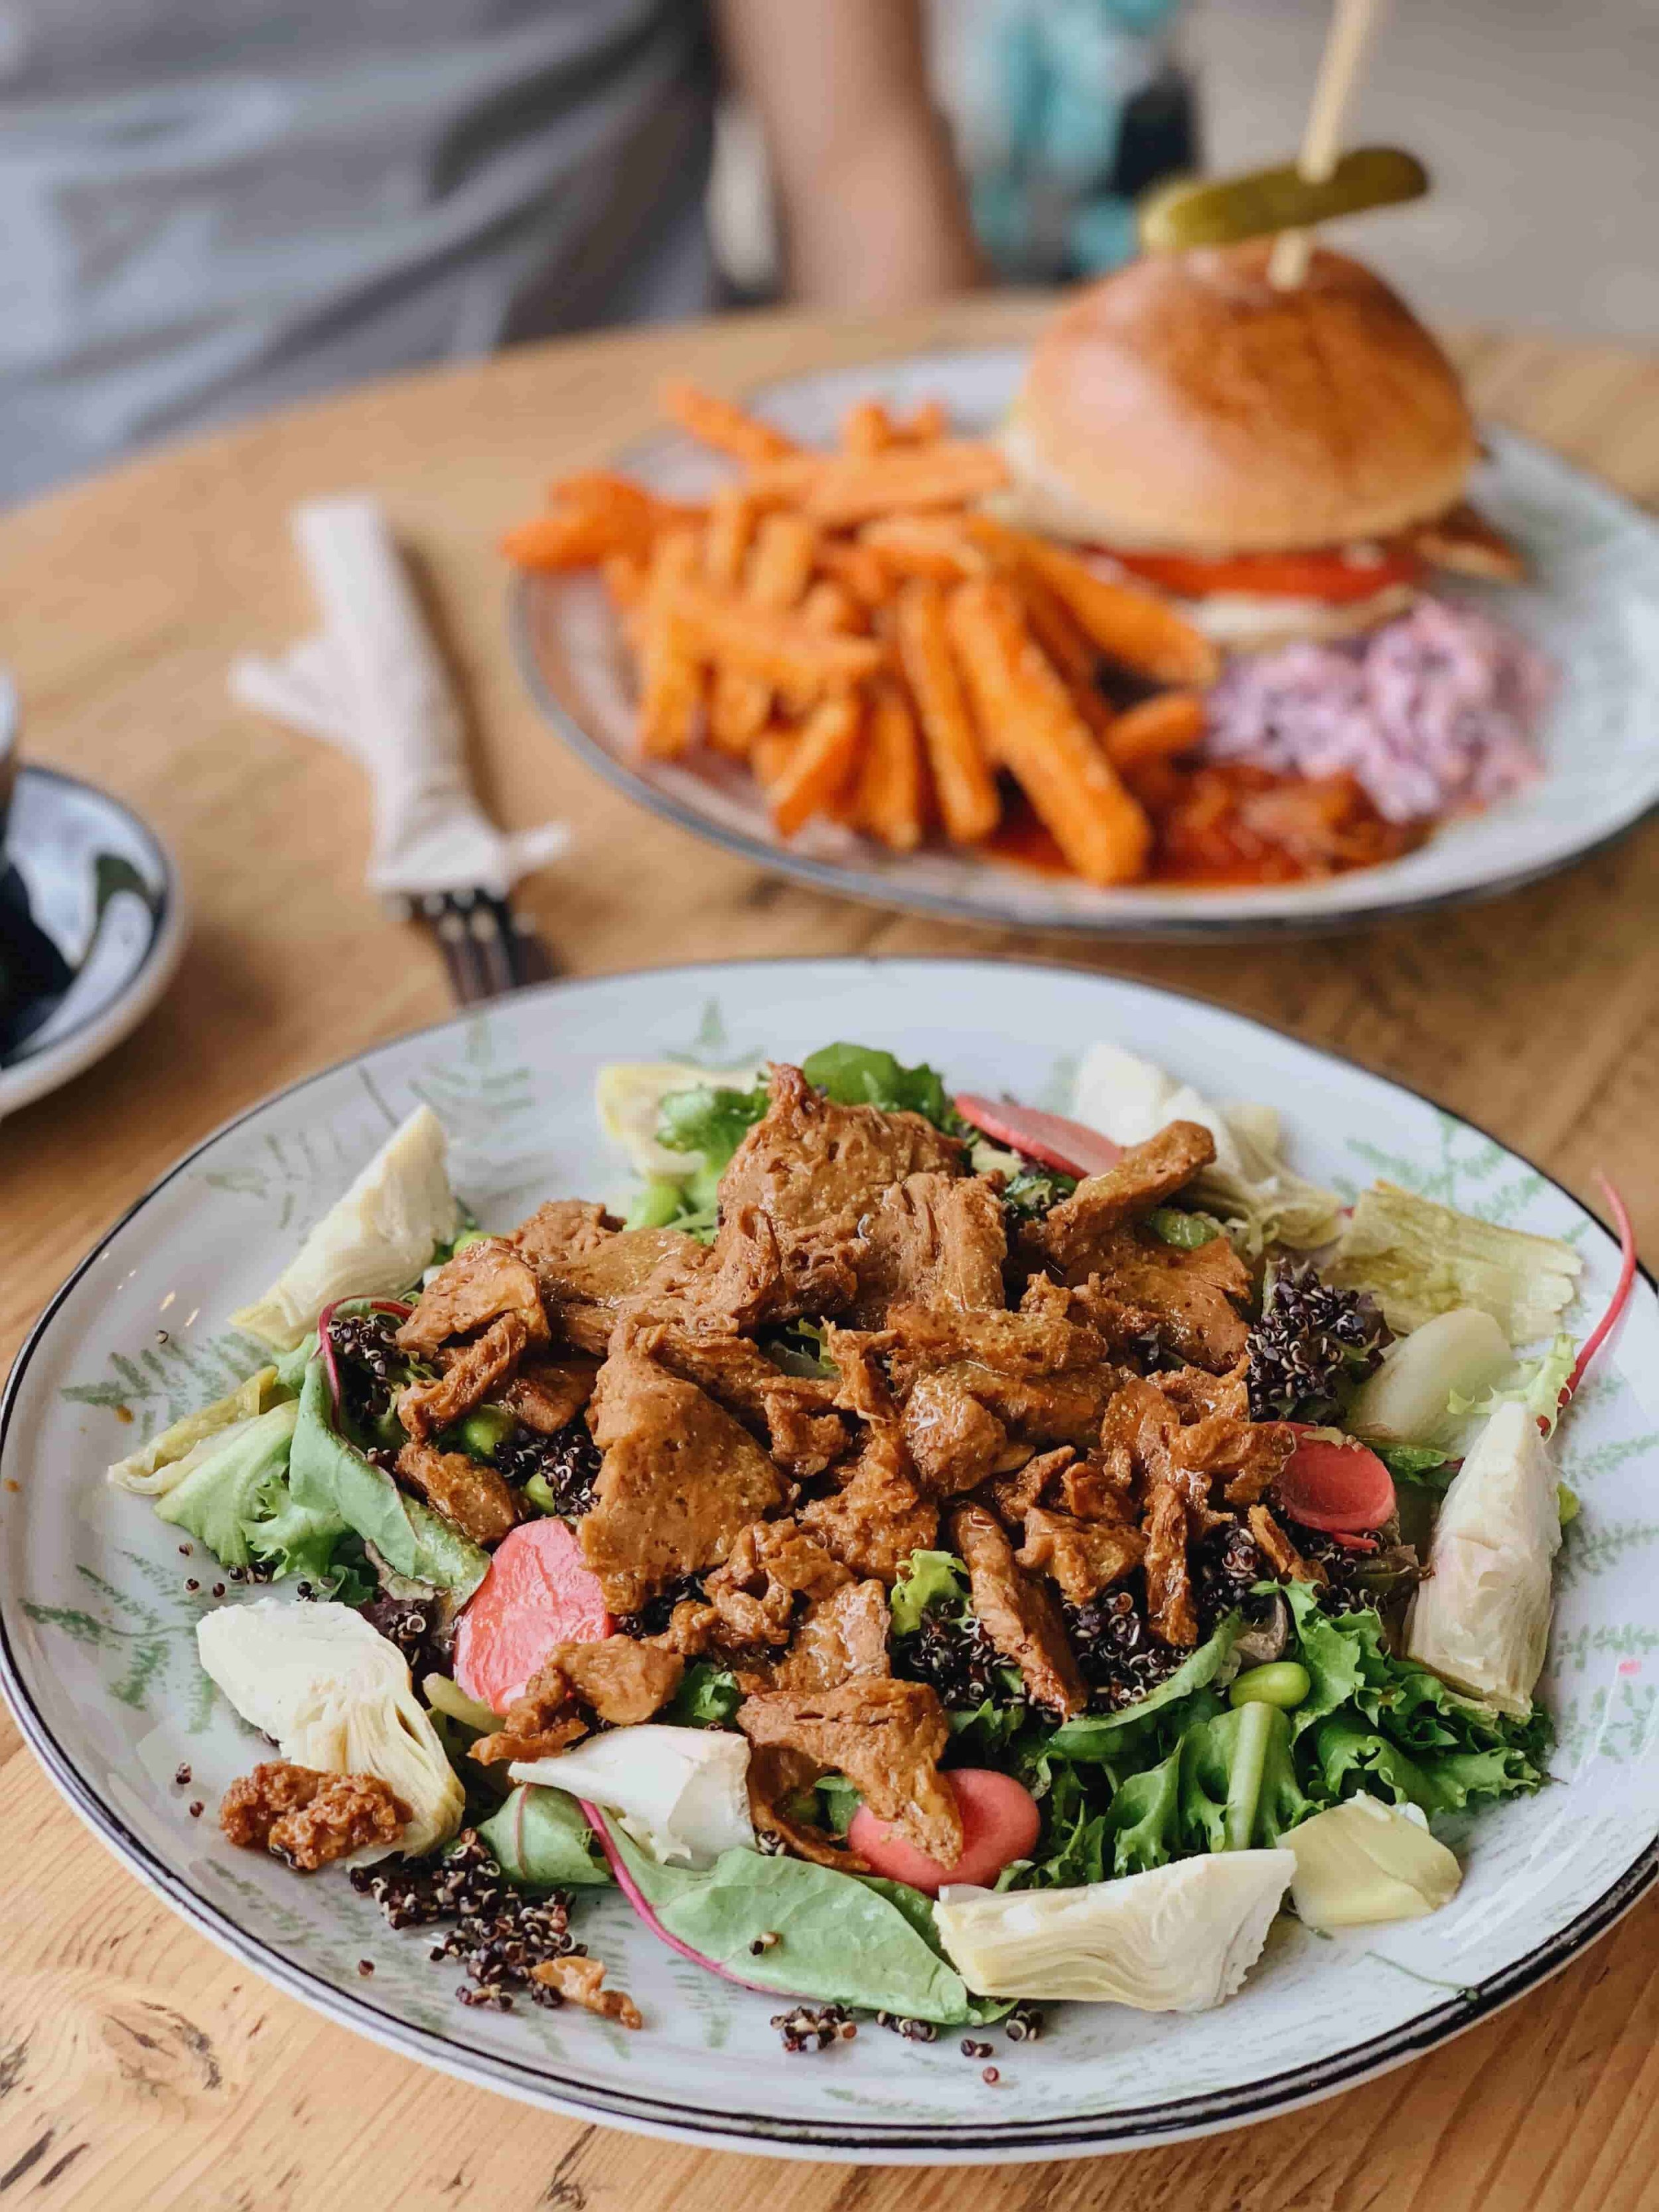 Southern Fried Seitan Superfood Salad - Peckham Rye cafe has a variety of vegan /veggie plates